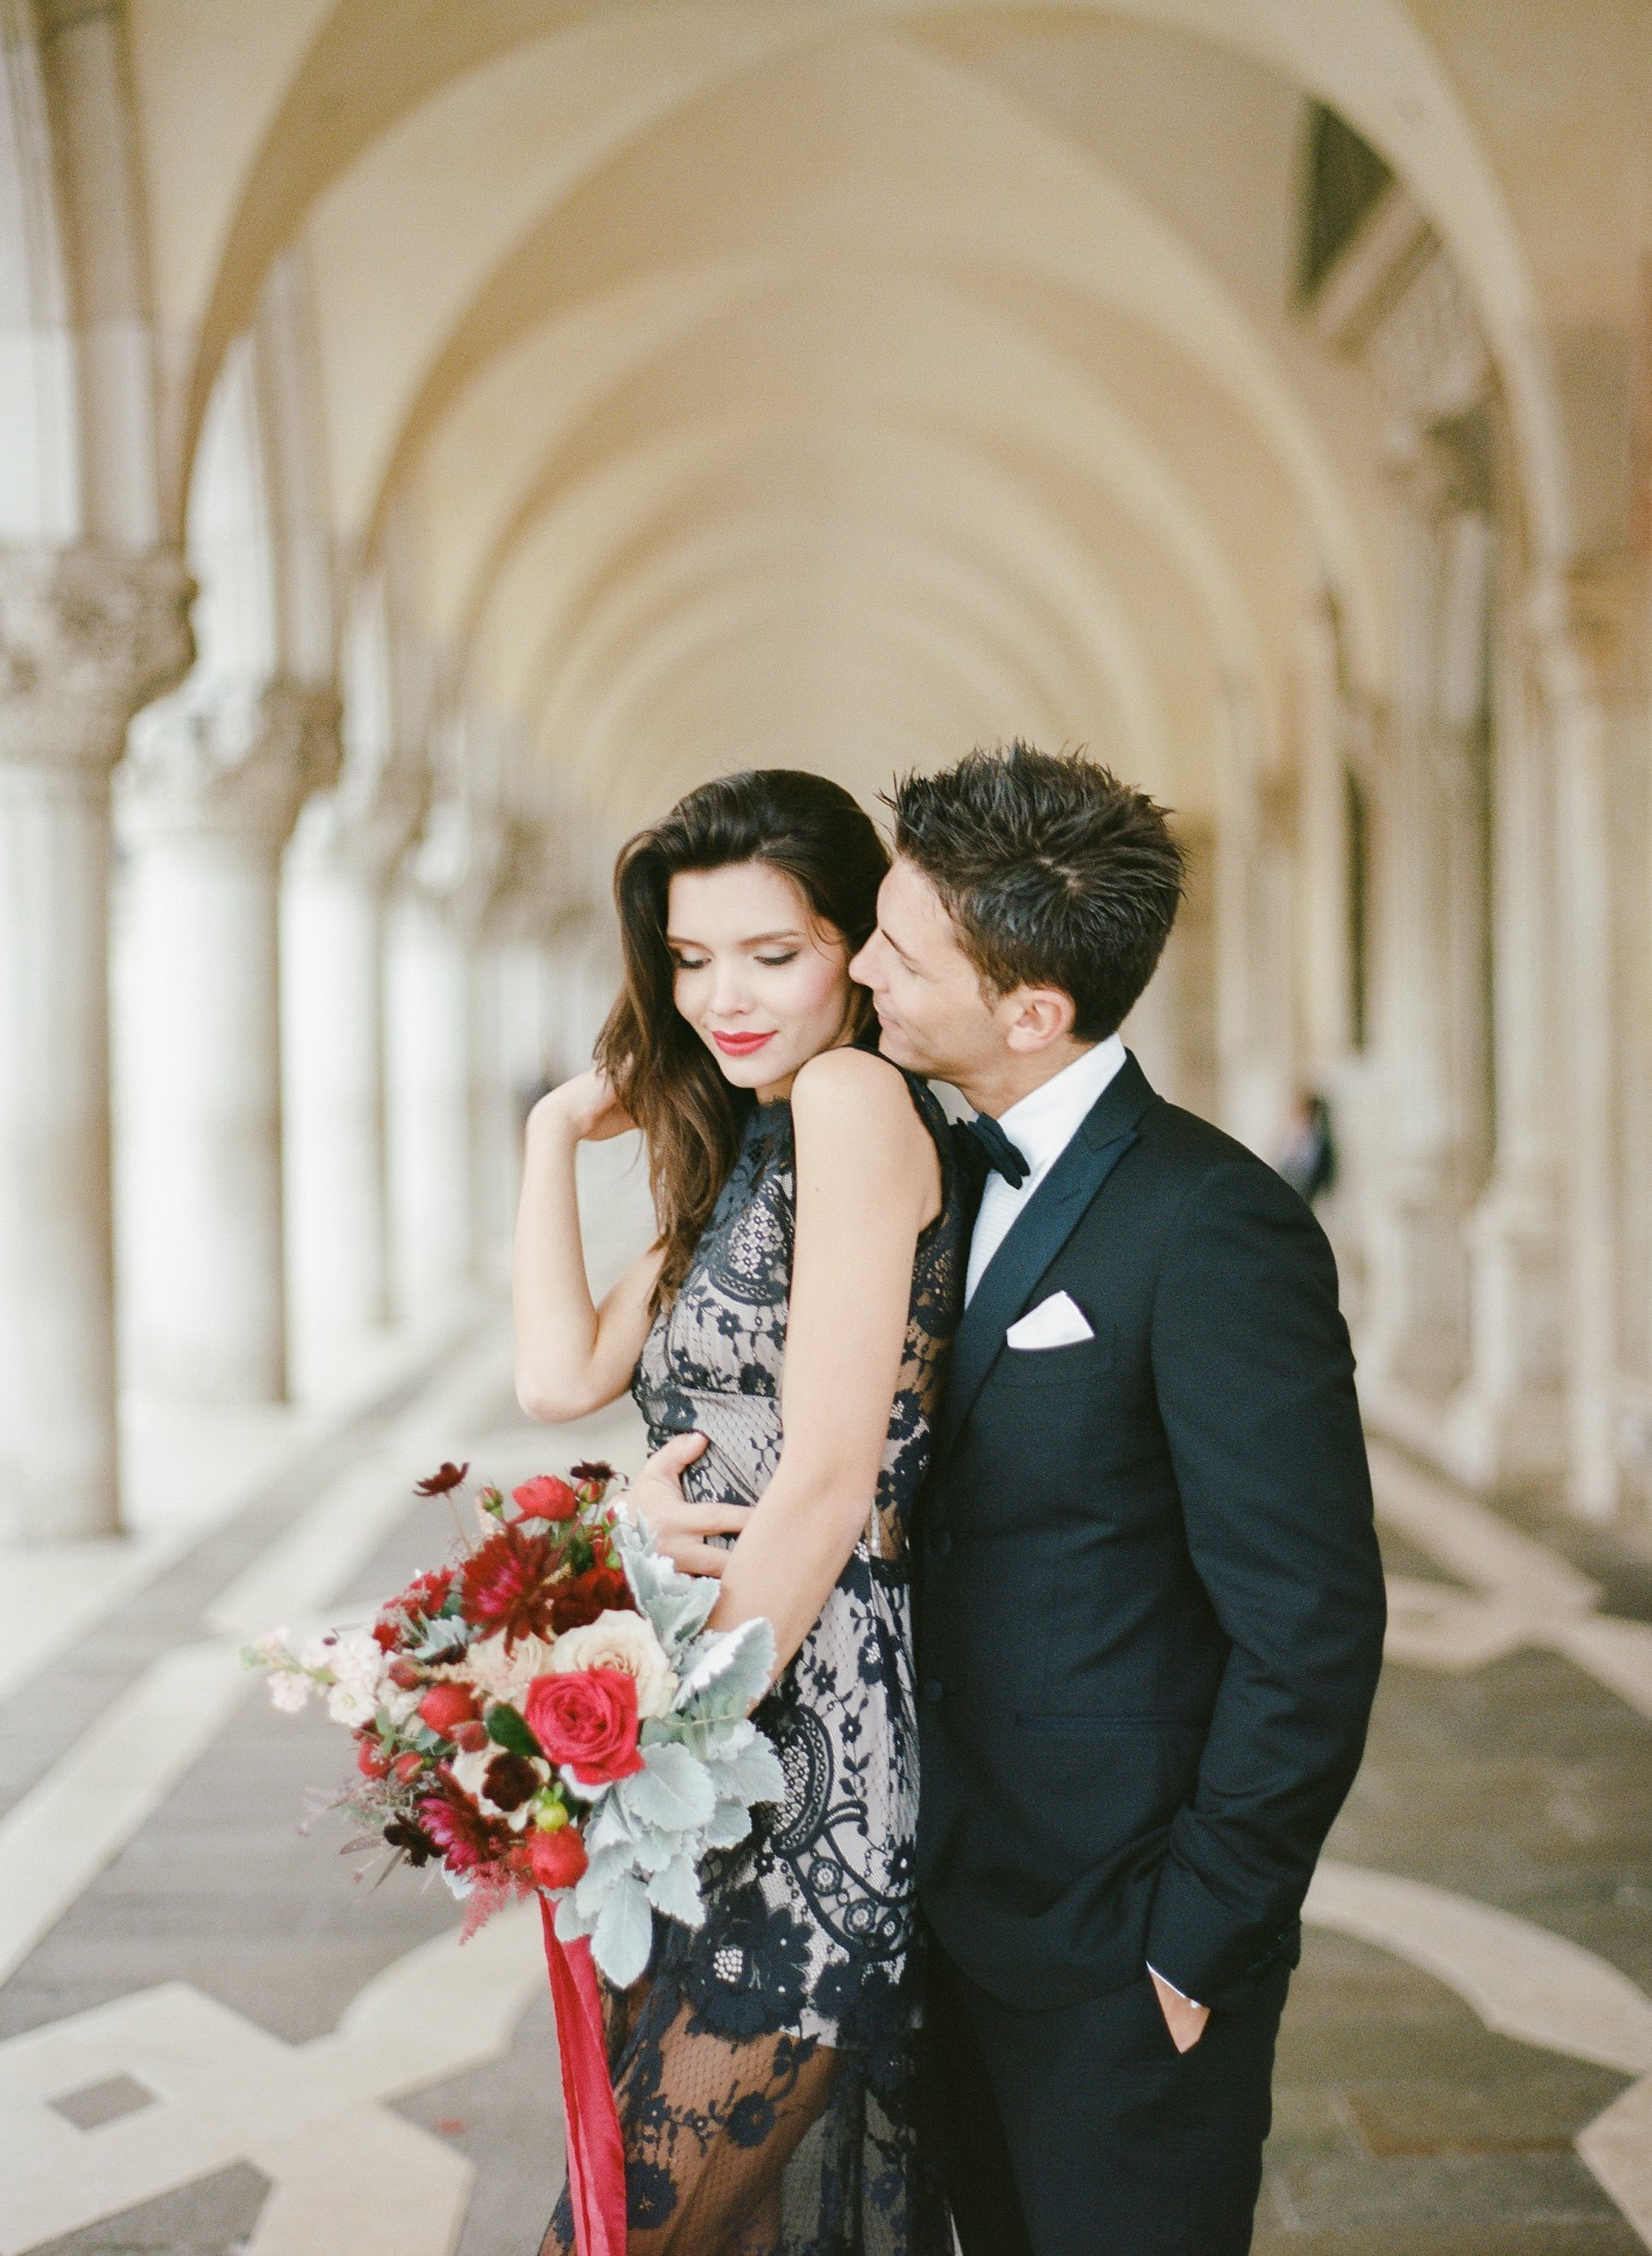 italy-venice-elopement-wedding-planner-flower-designer-049